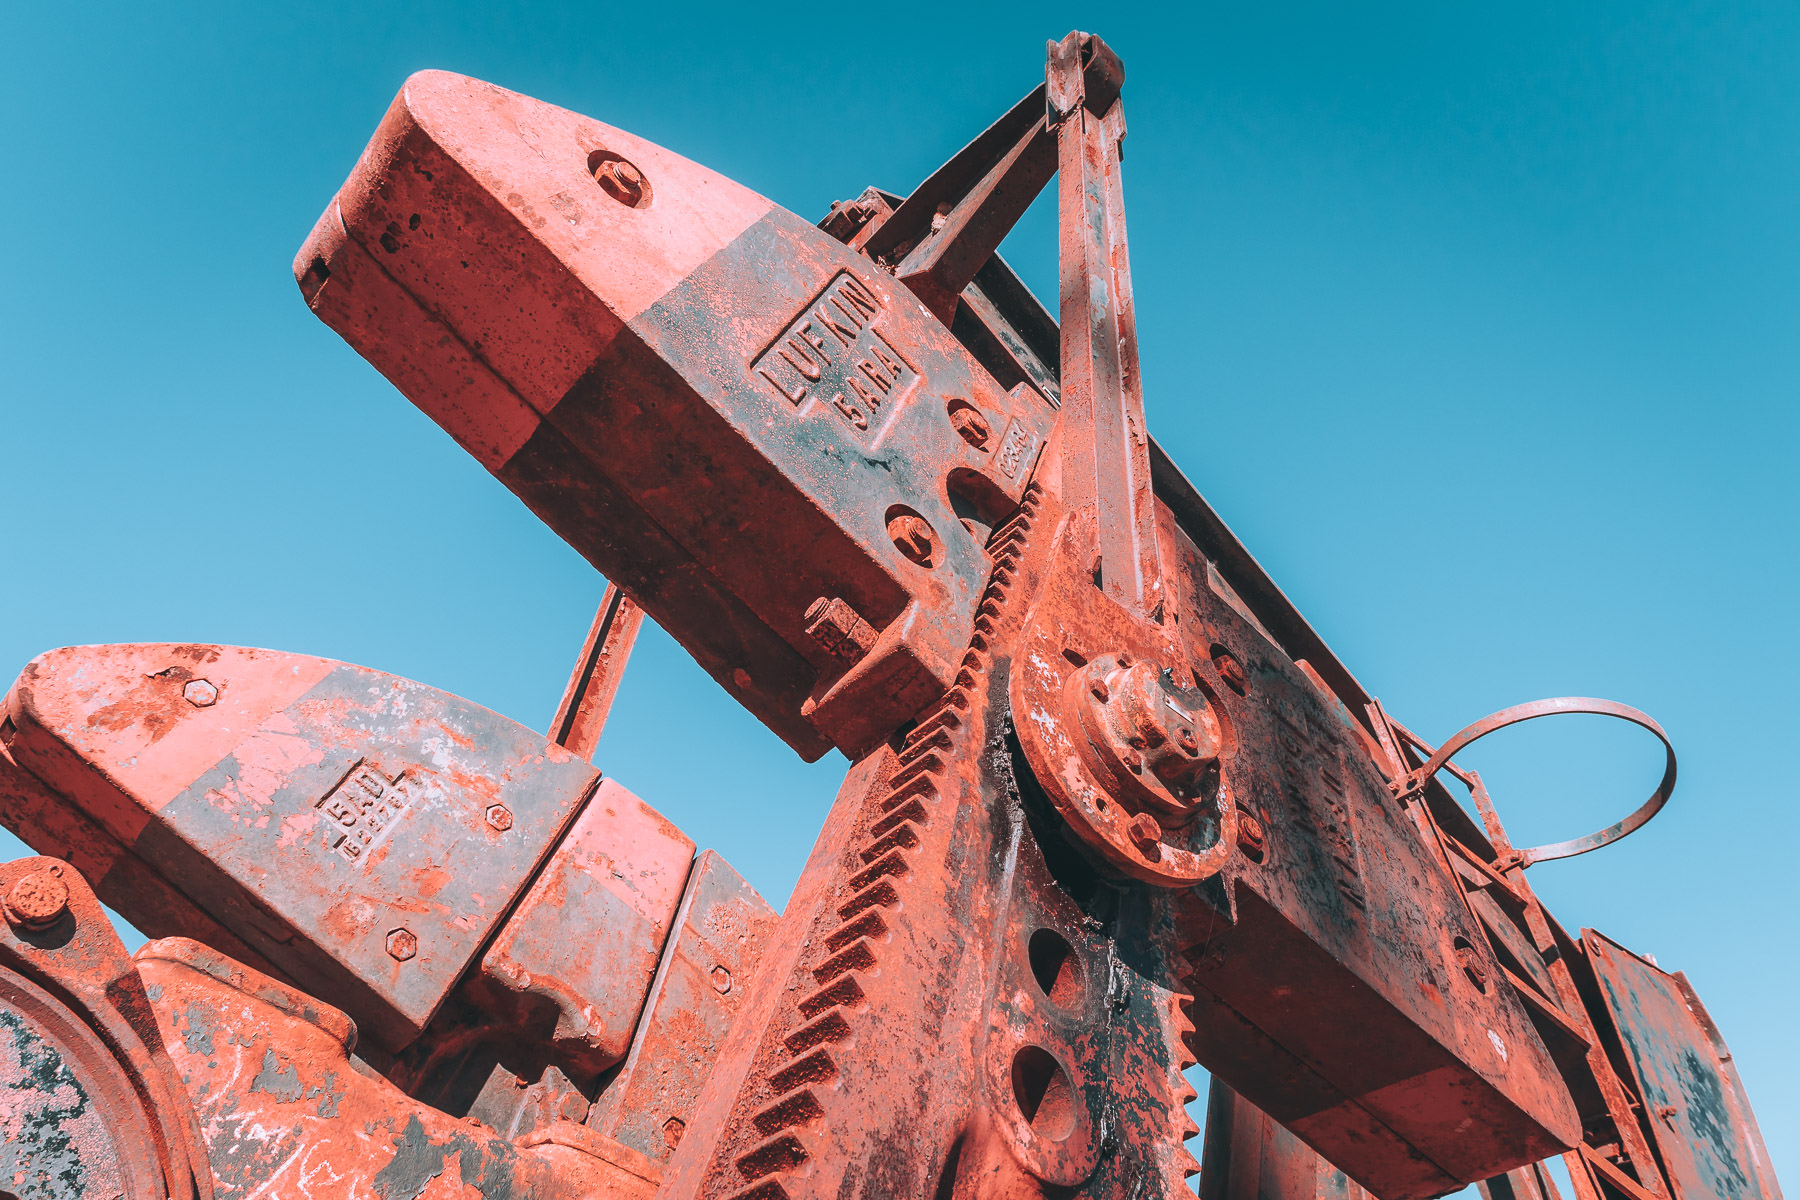 Detail of a rusted pumpjack at the Hagerman National Wildlife Refuge, Texas.